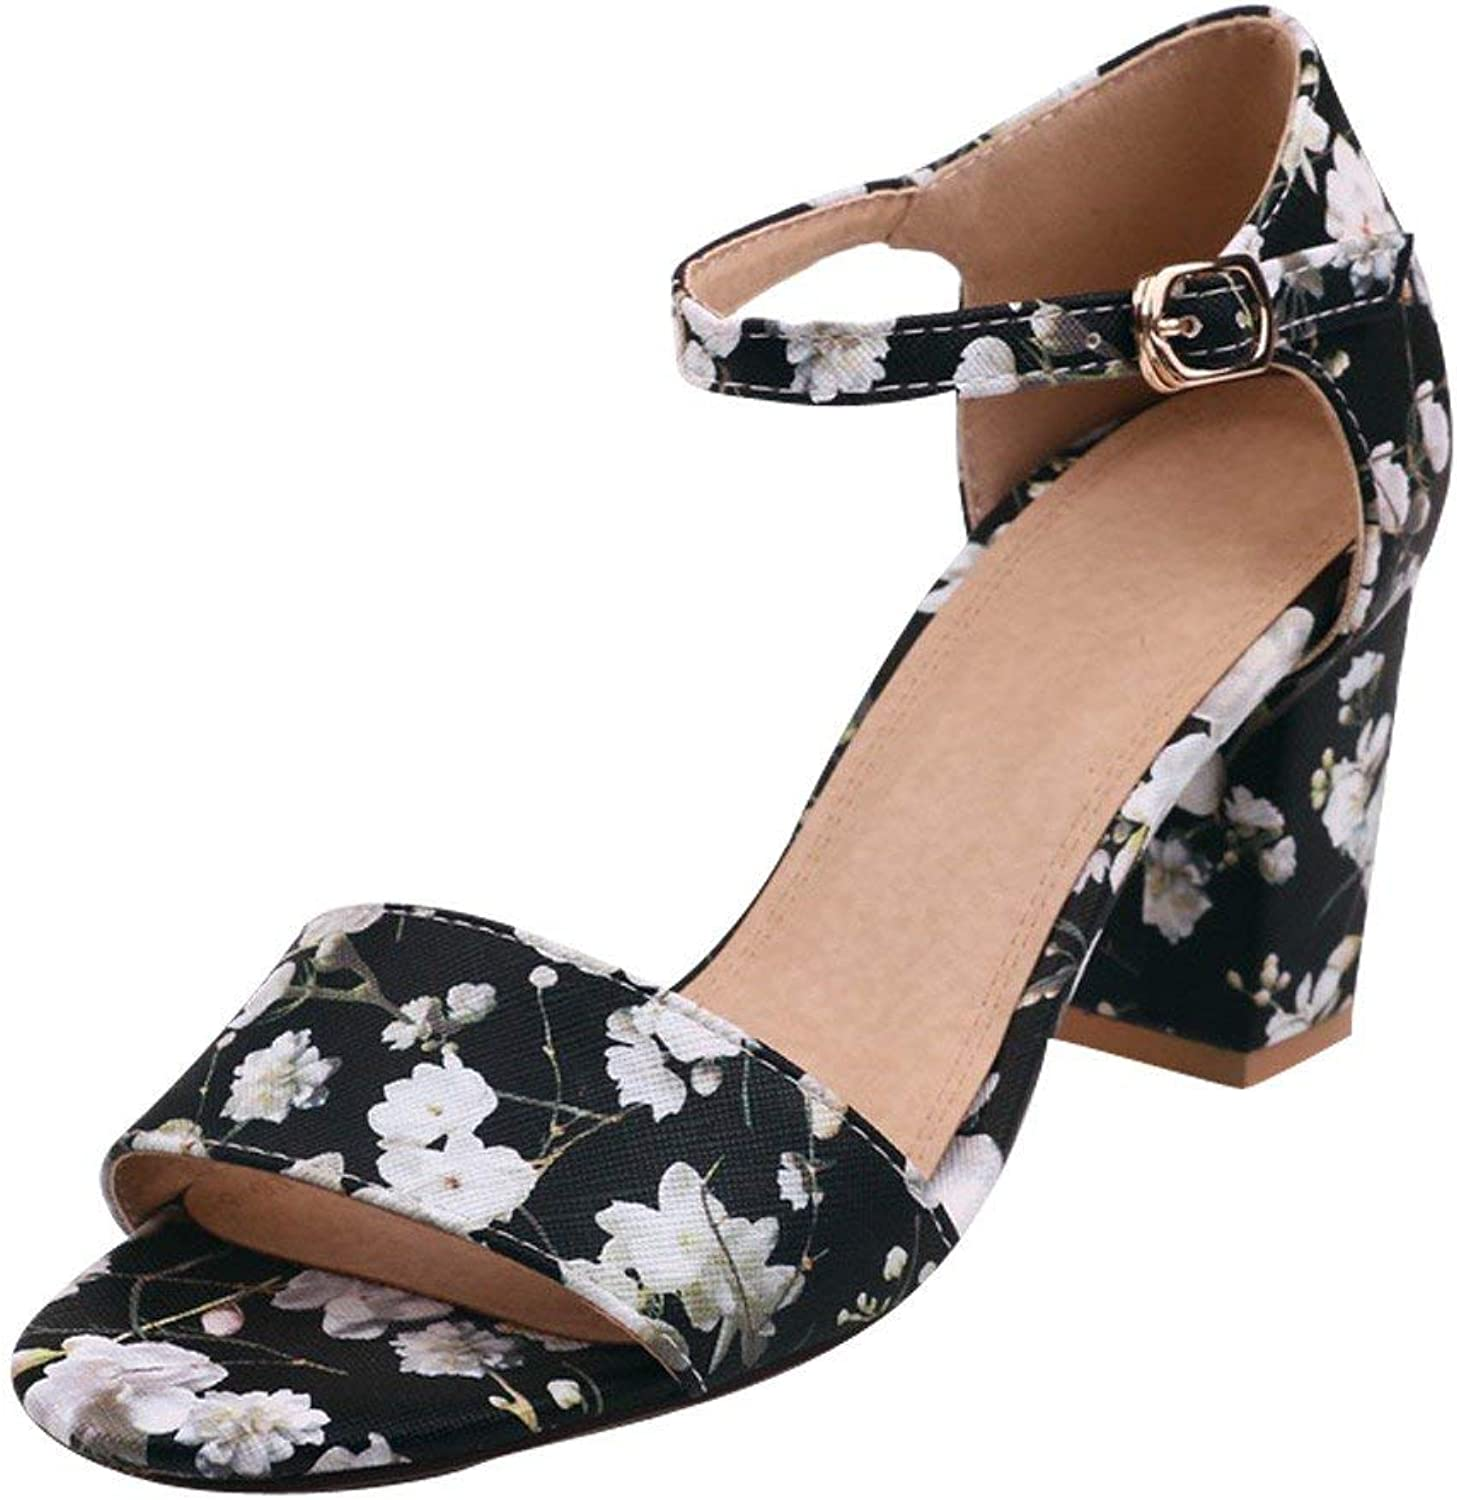 Ghapwe Women's Open Toe Chunky High Heel Floral Heeled Sandals White 8 M US